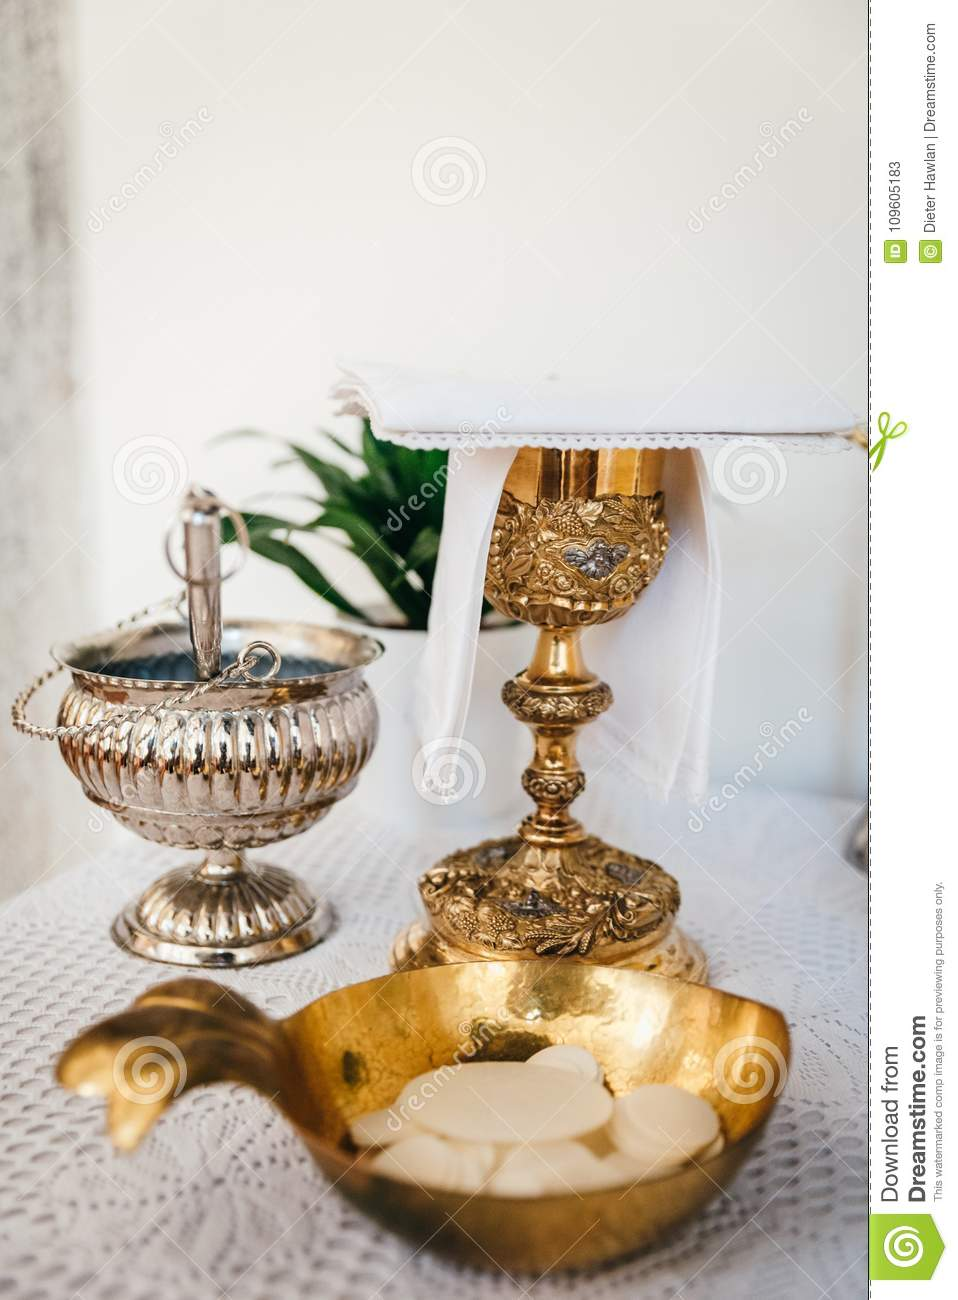 Altar and liturgy stock image  Image of golden, table